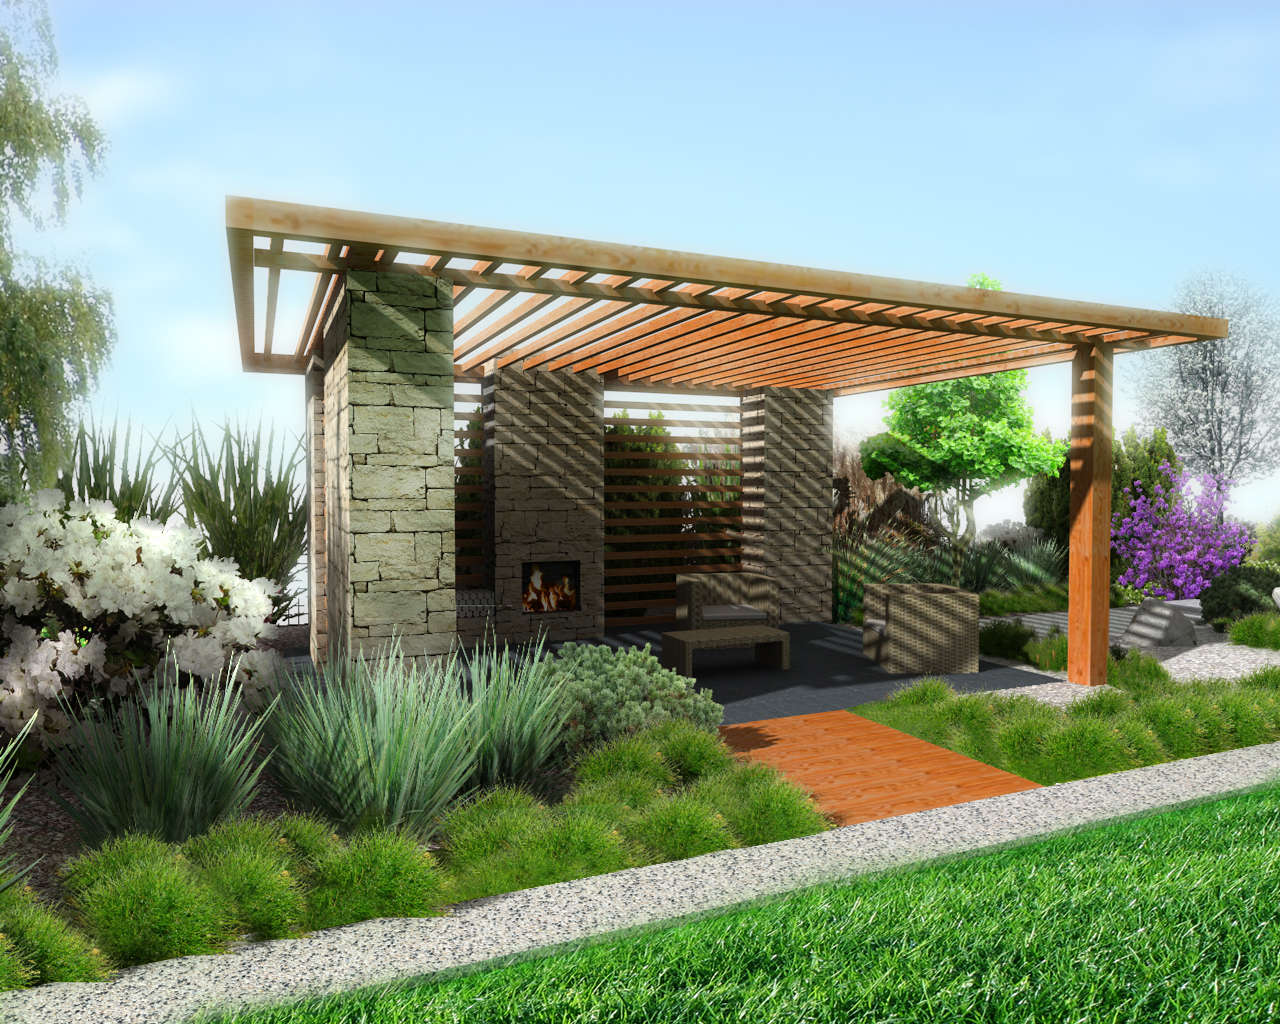 Gazebo with fireplace design concept by jaro313 on deviantart - Outdoor gazebo plans with fireplace ...